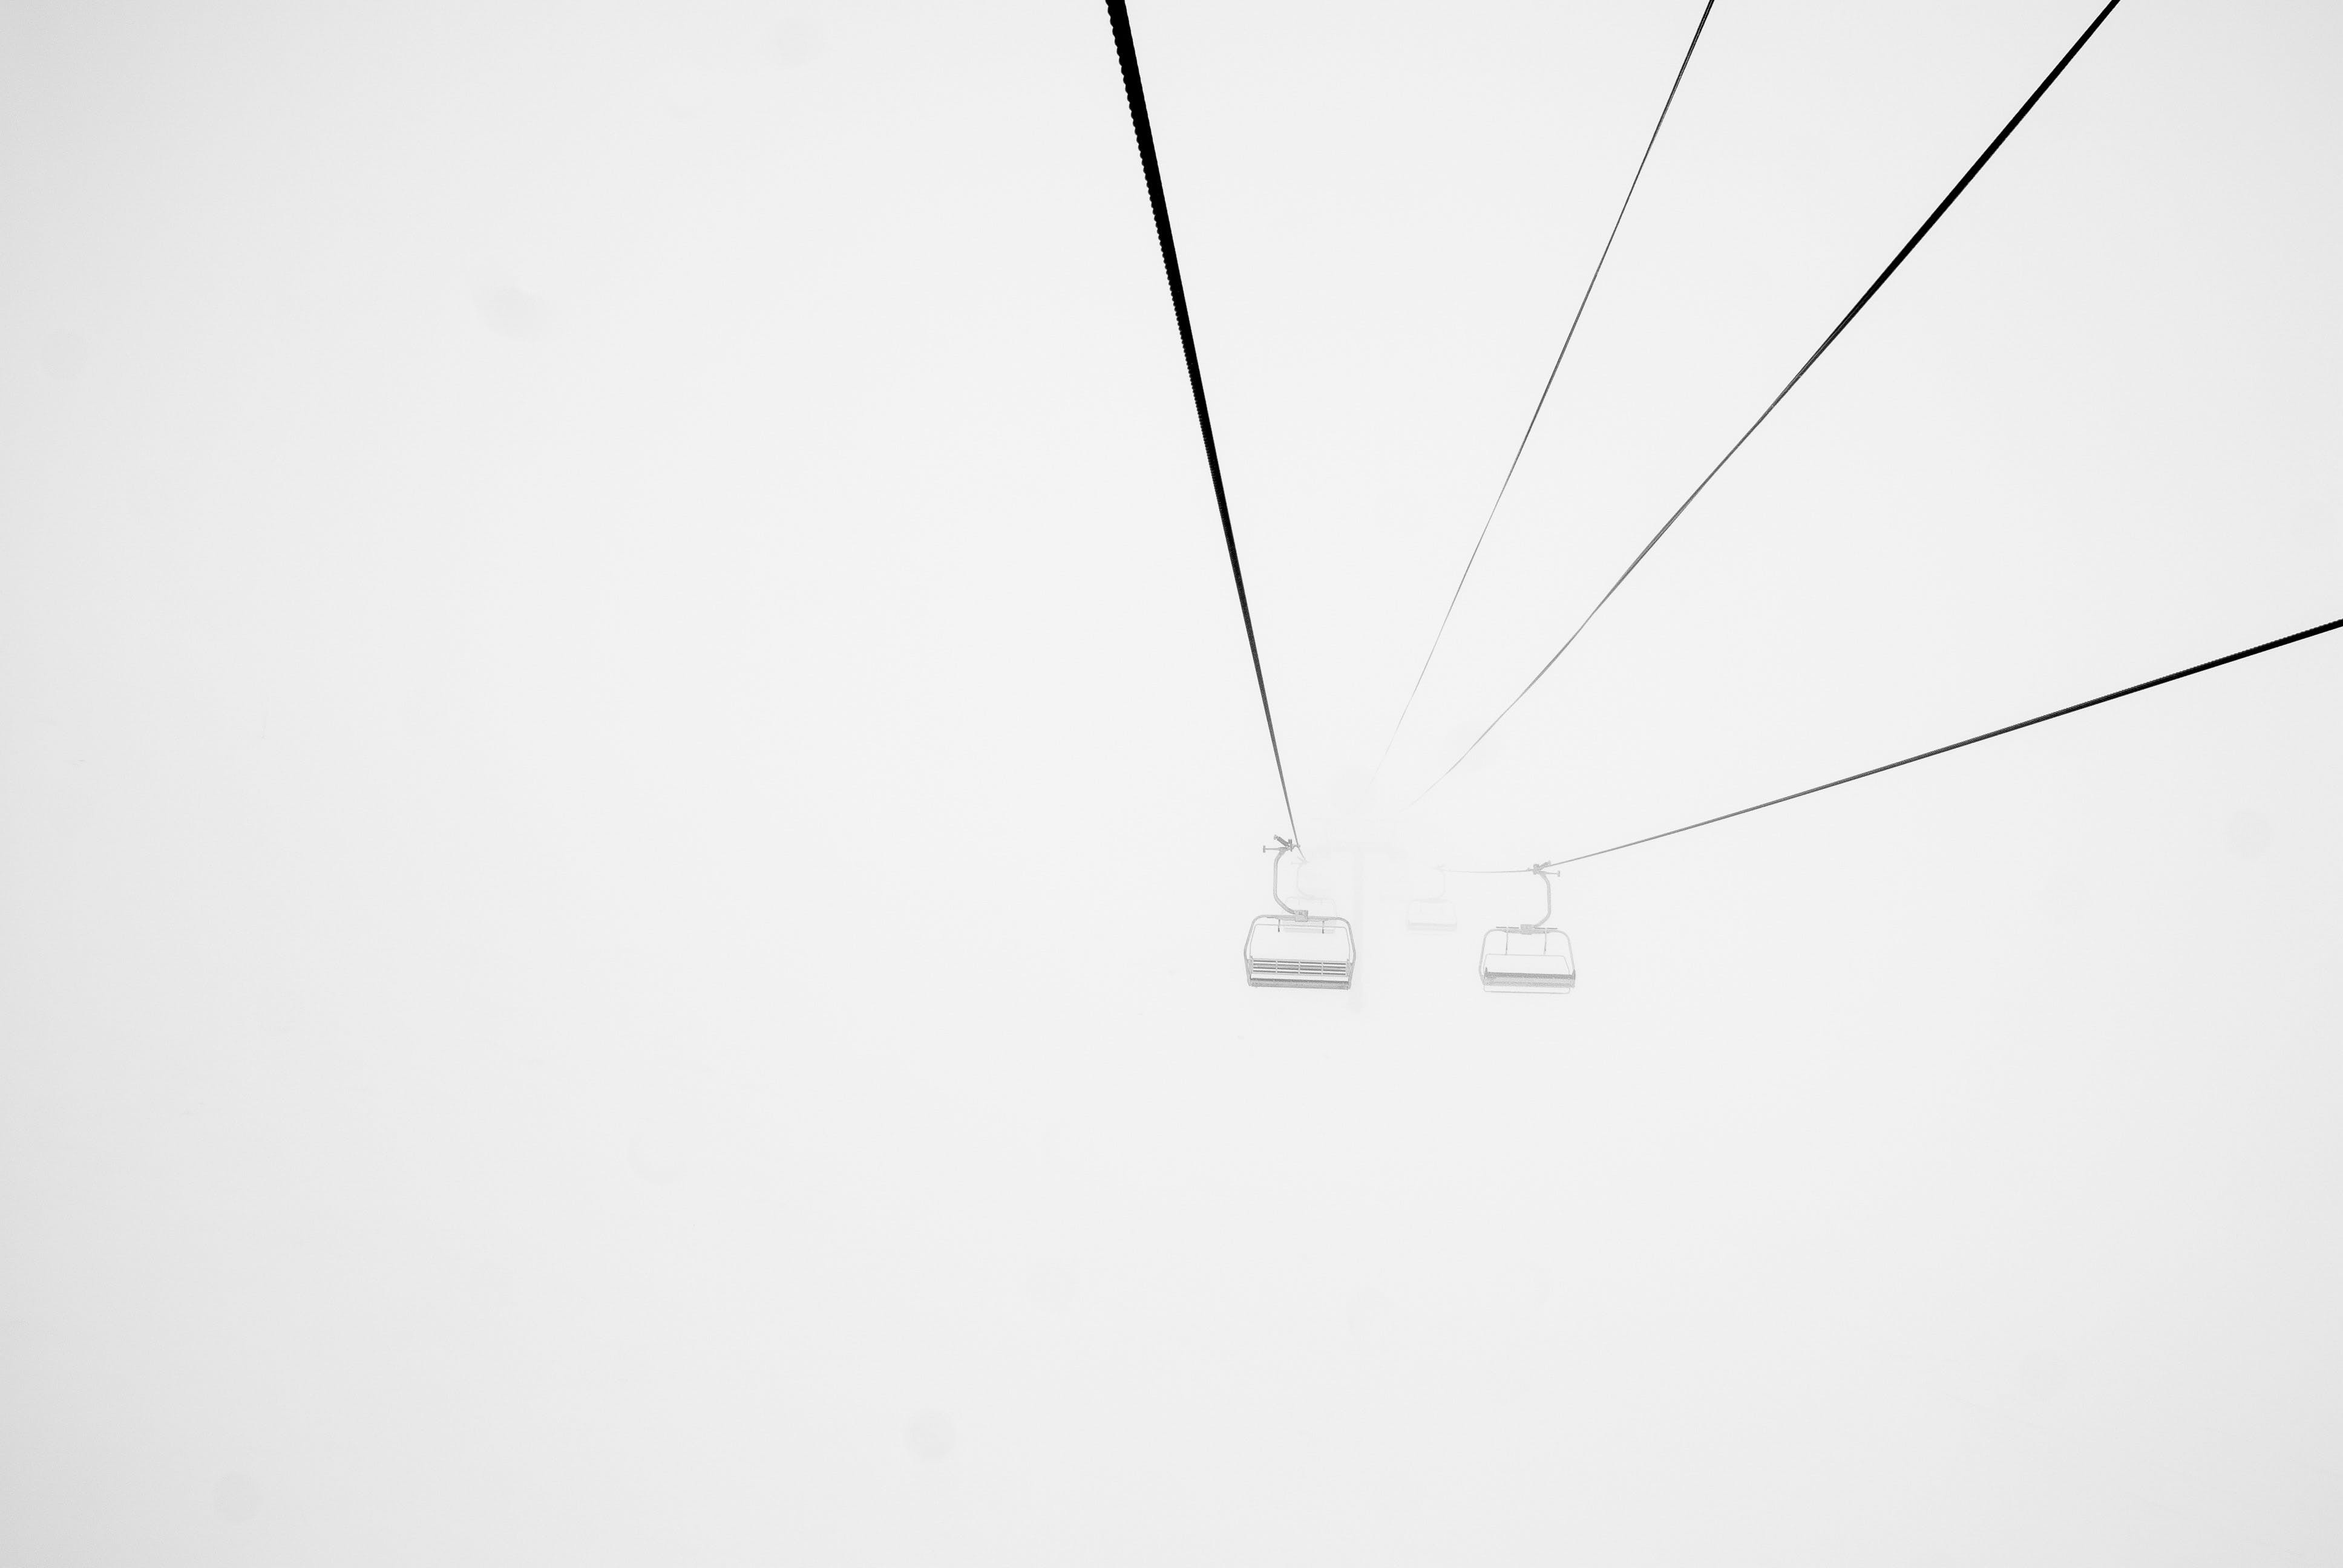 Black and White Image of Two Ski Lifts